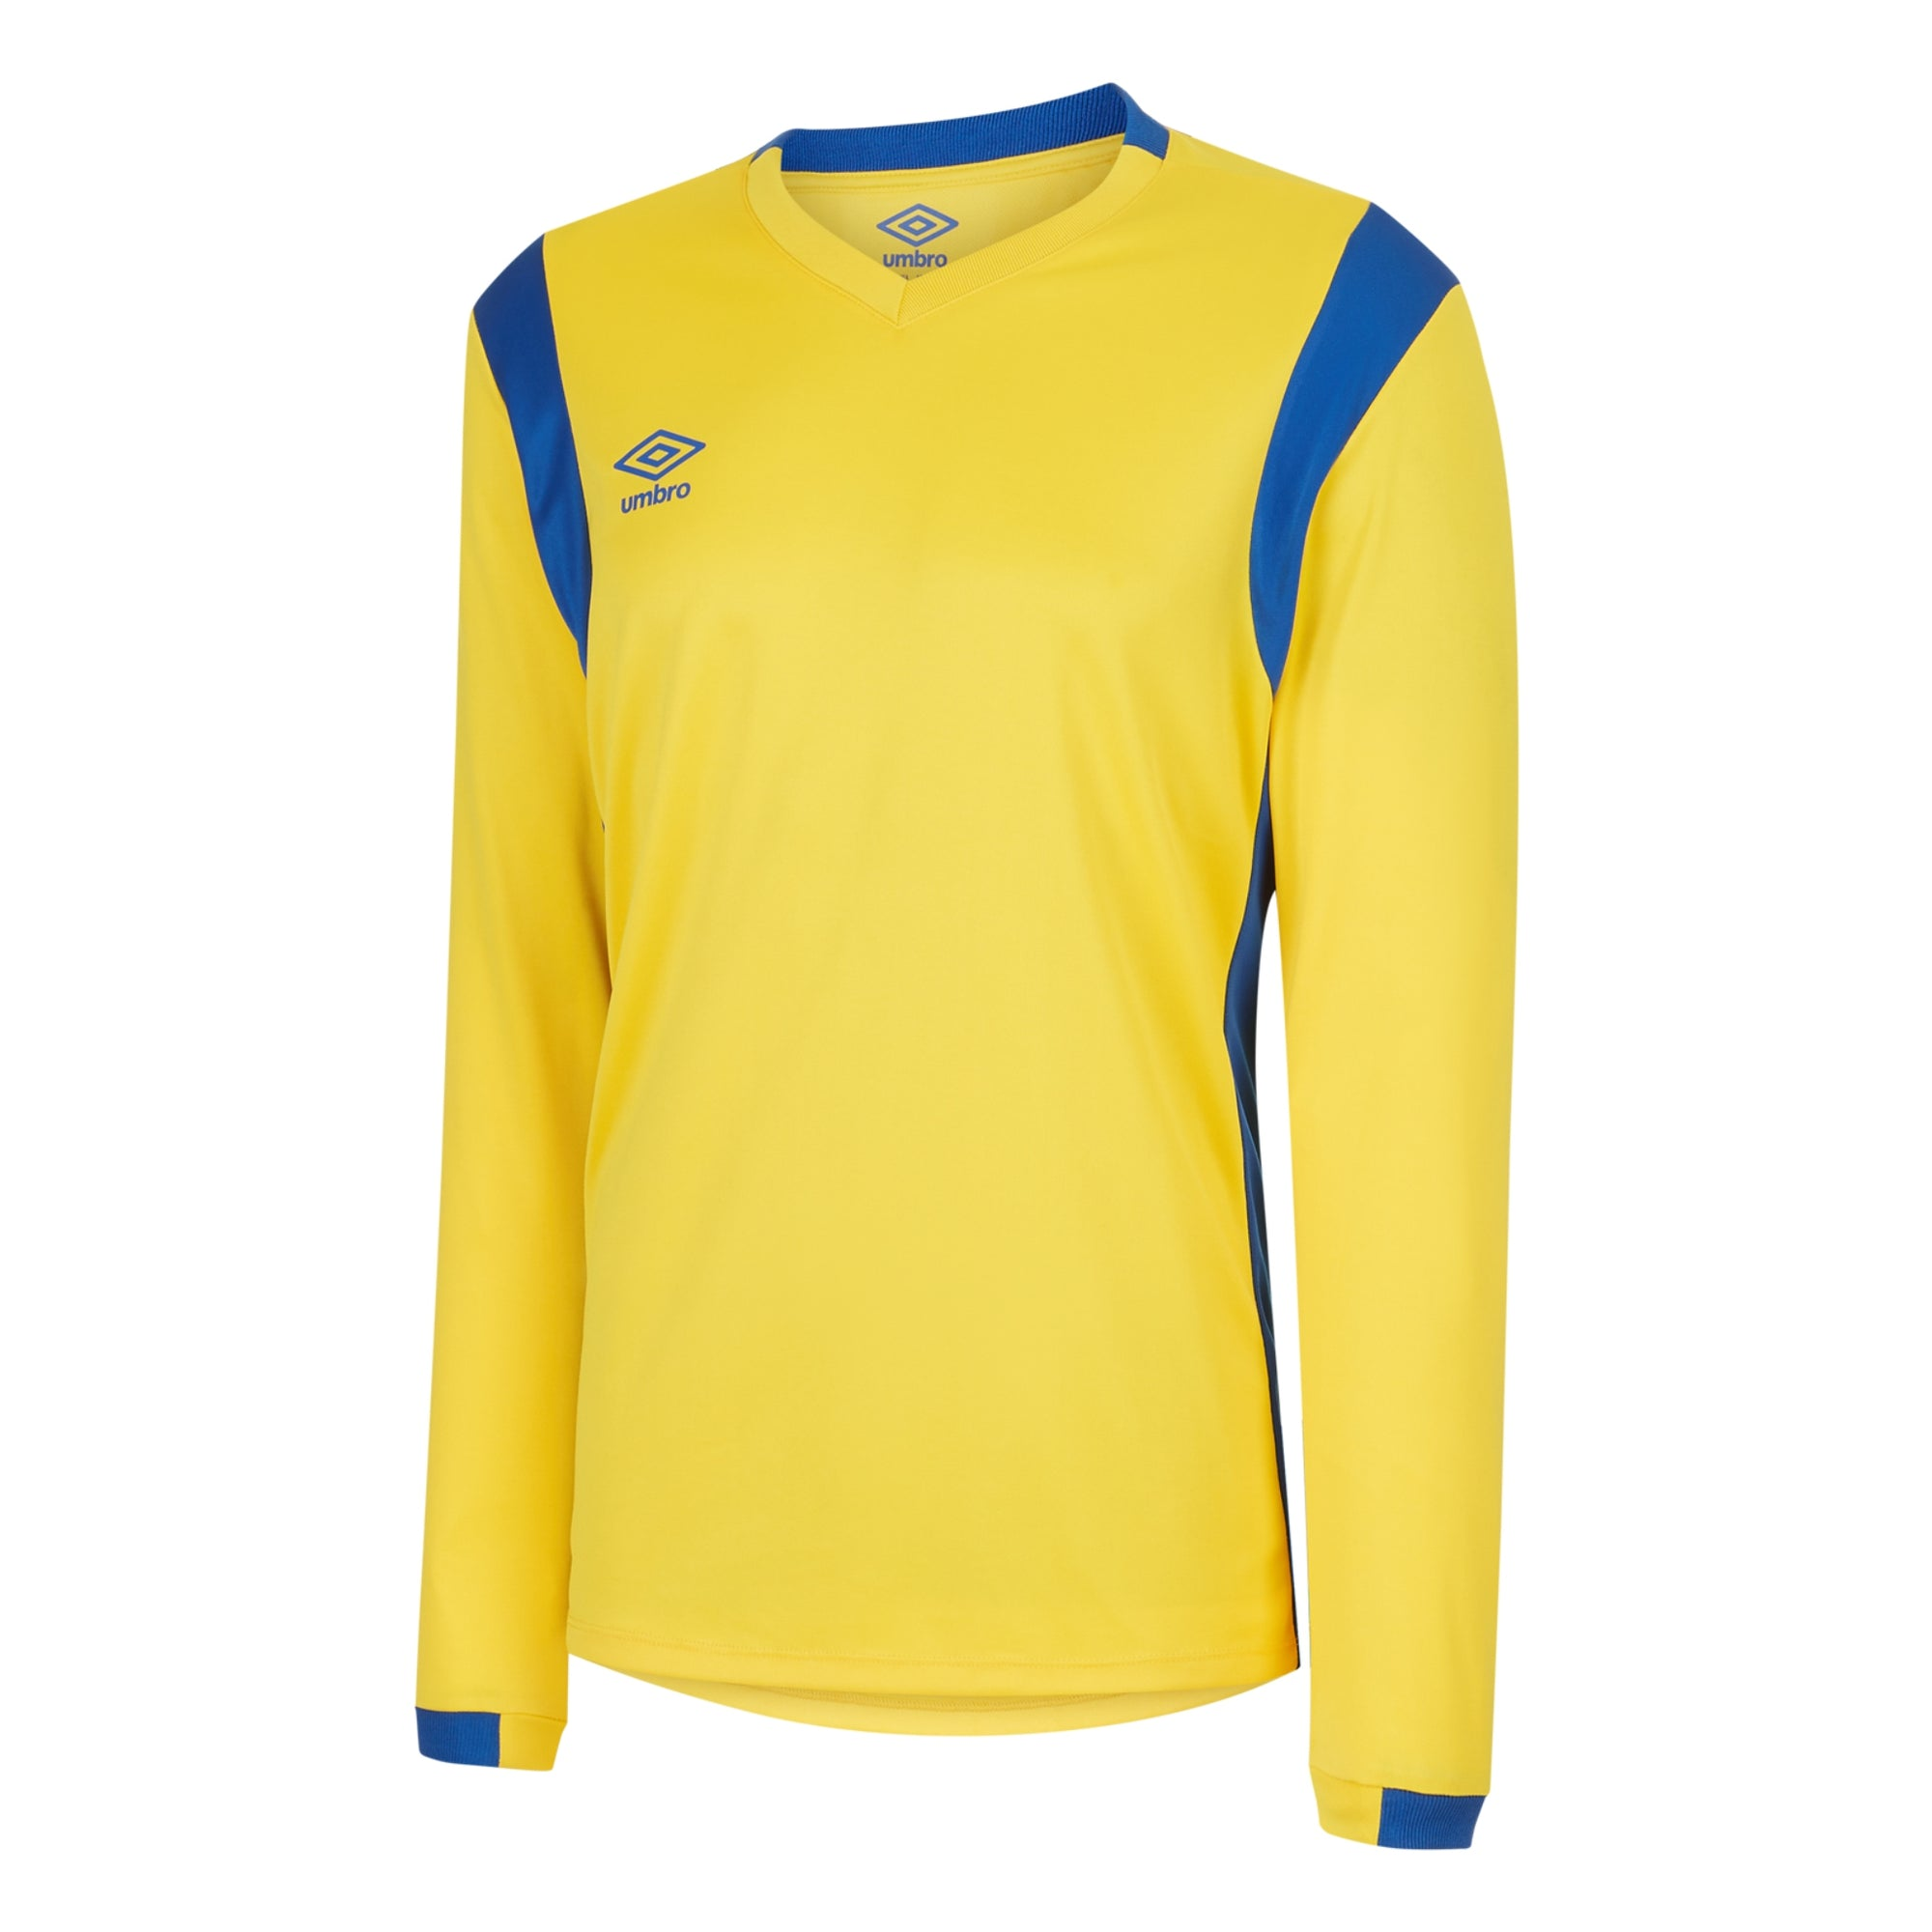 Umbro Spartan Jersey LS - Yellow/Royal